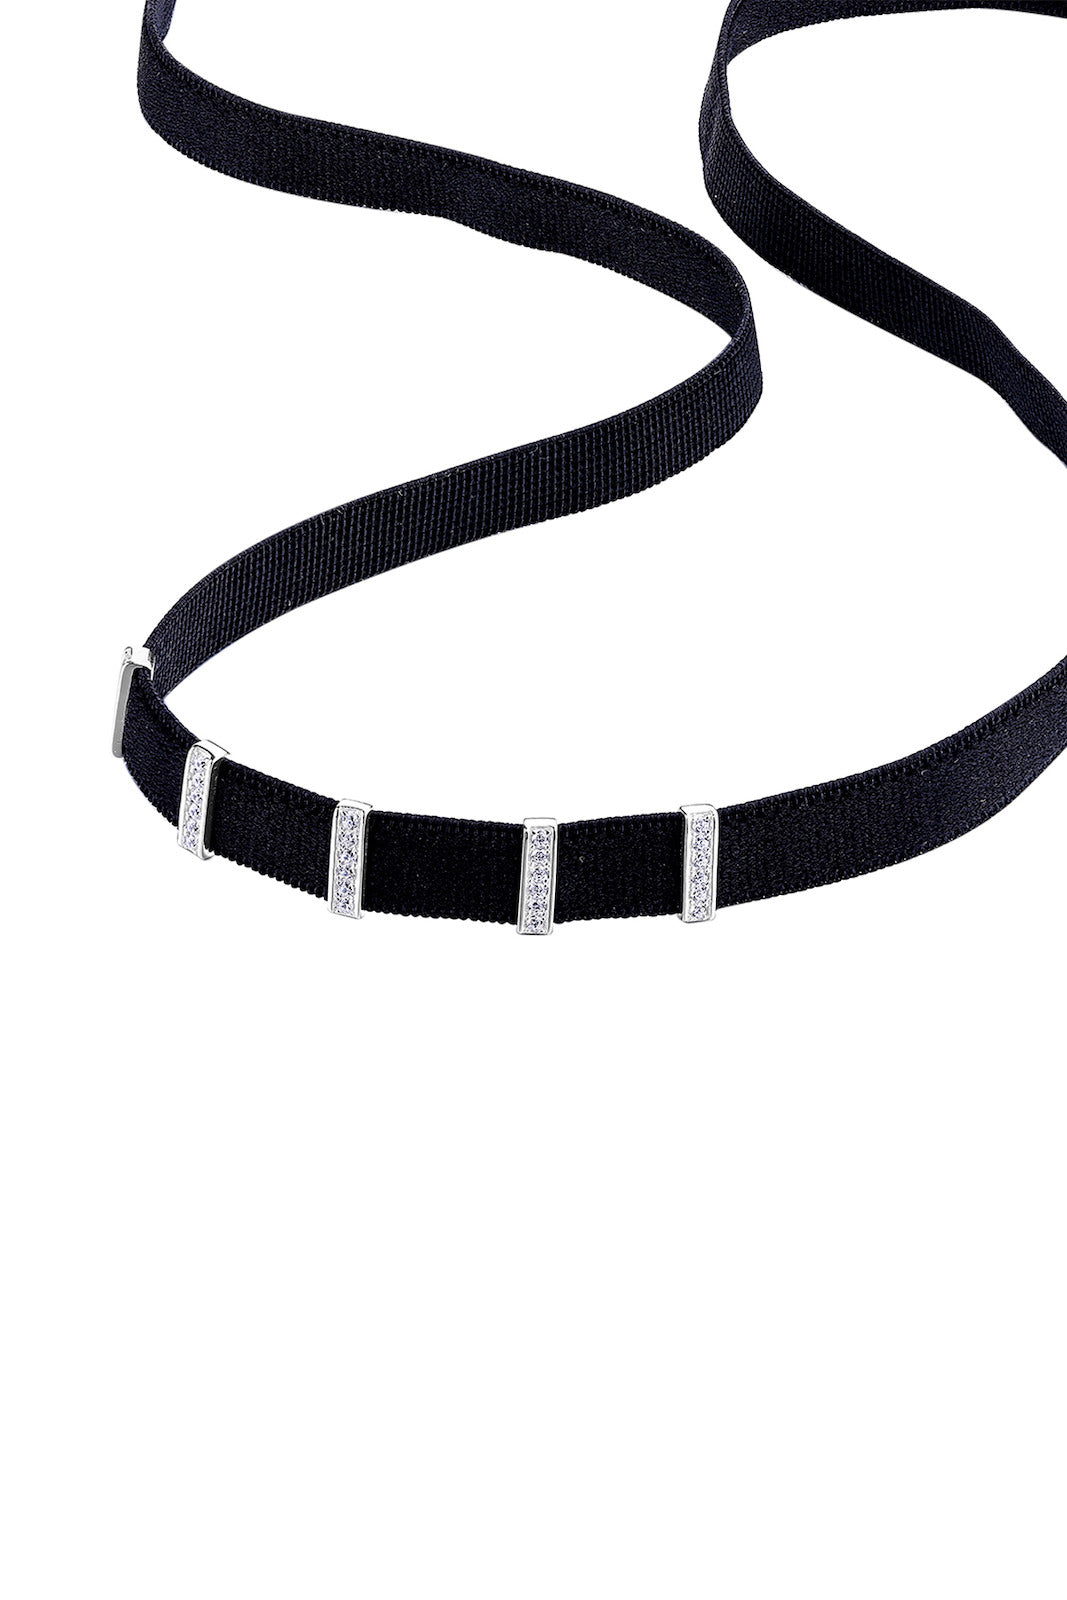 Classic Retro Silver Stretch Band Choker with Adjustable Pendants